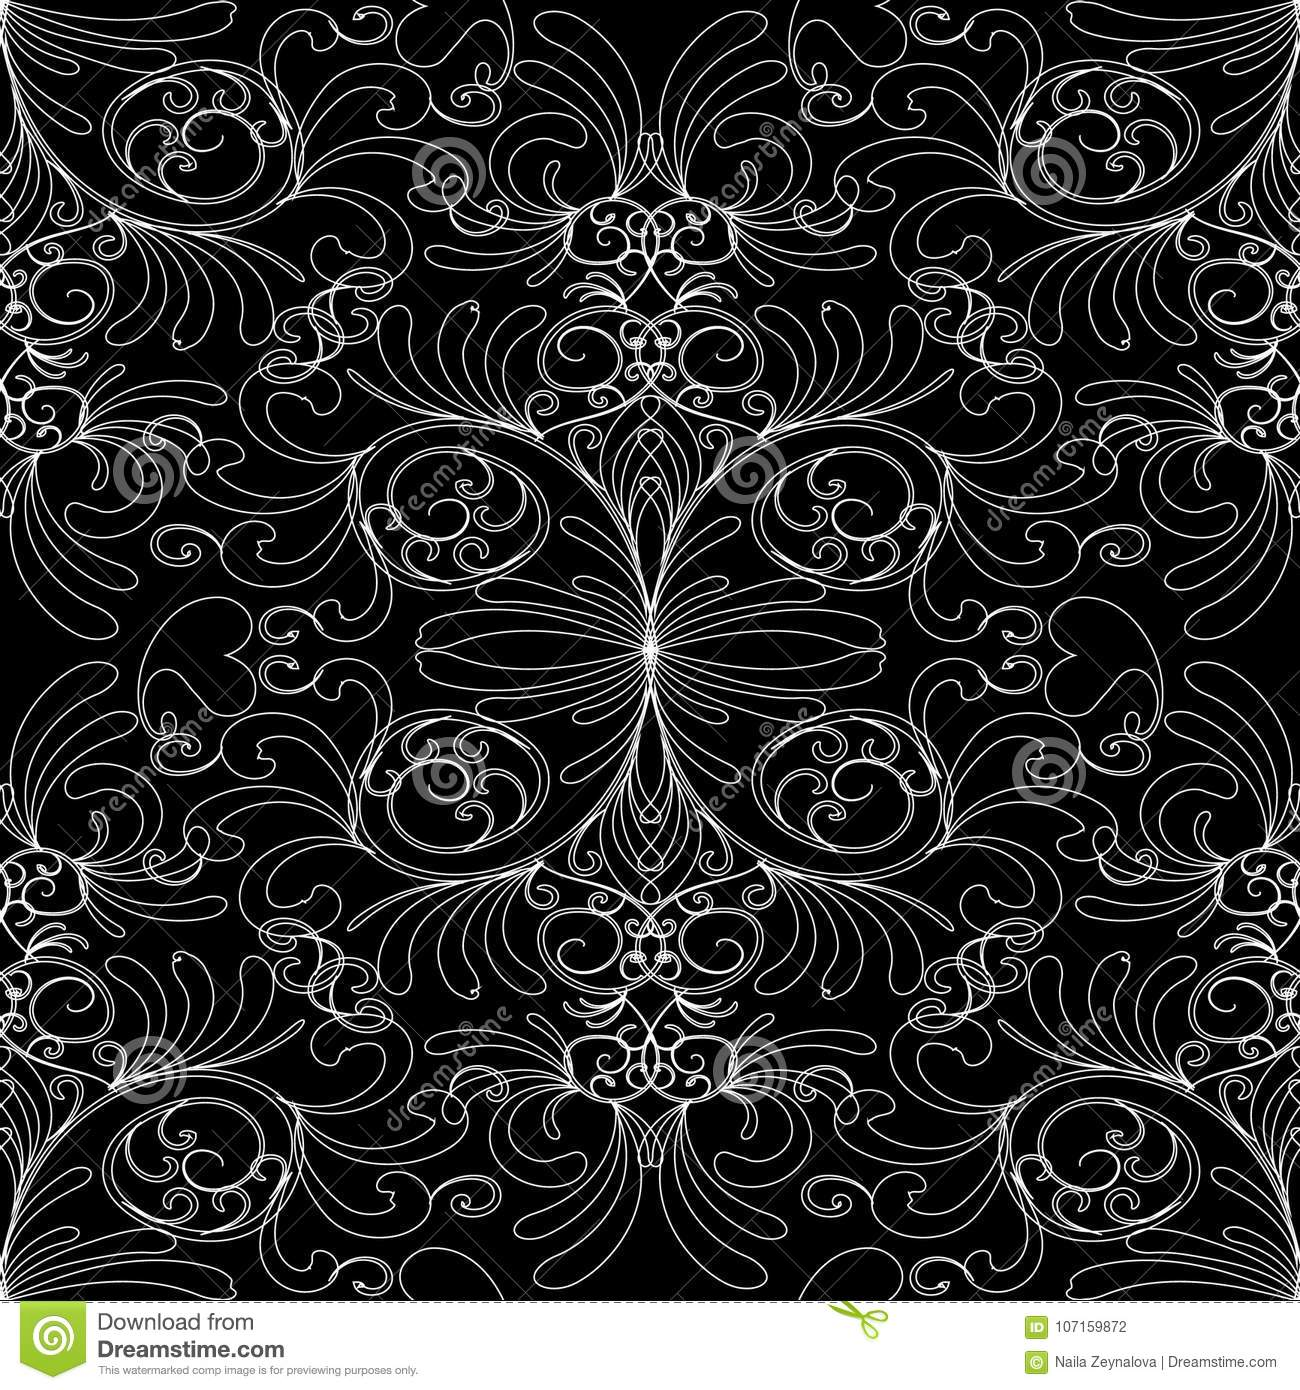 Floral Seamless Pattern Damask Vintage Black White Background